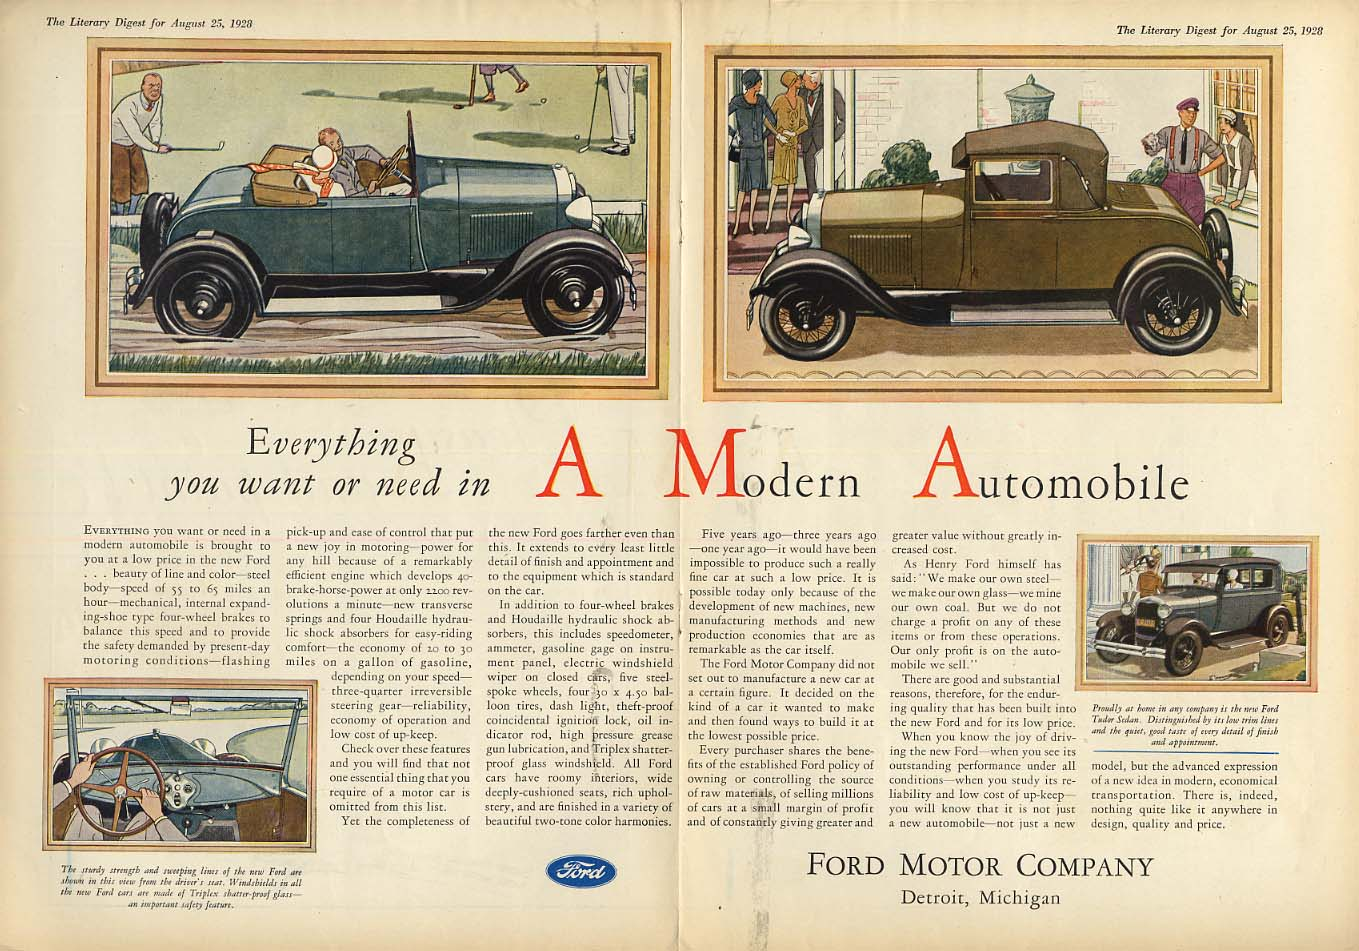 Everything you want or need in a Modern Automobile: Ford Model A ad 1928 LD